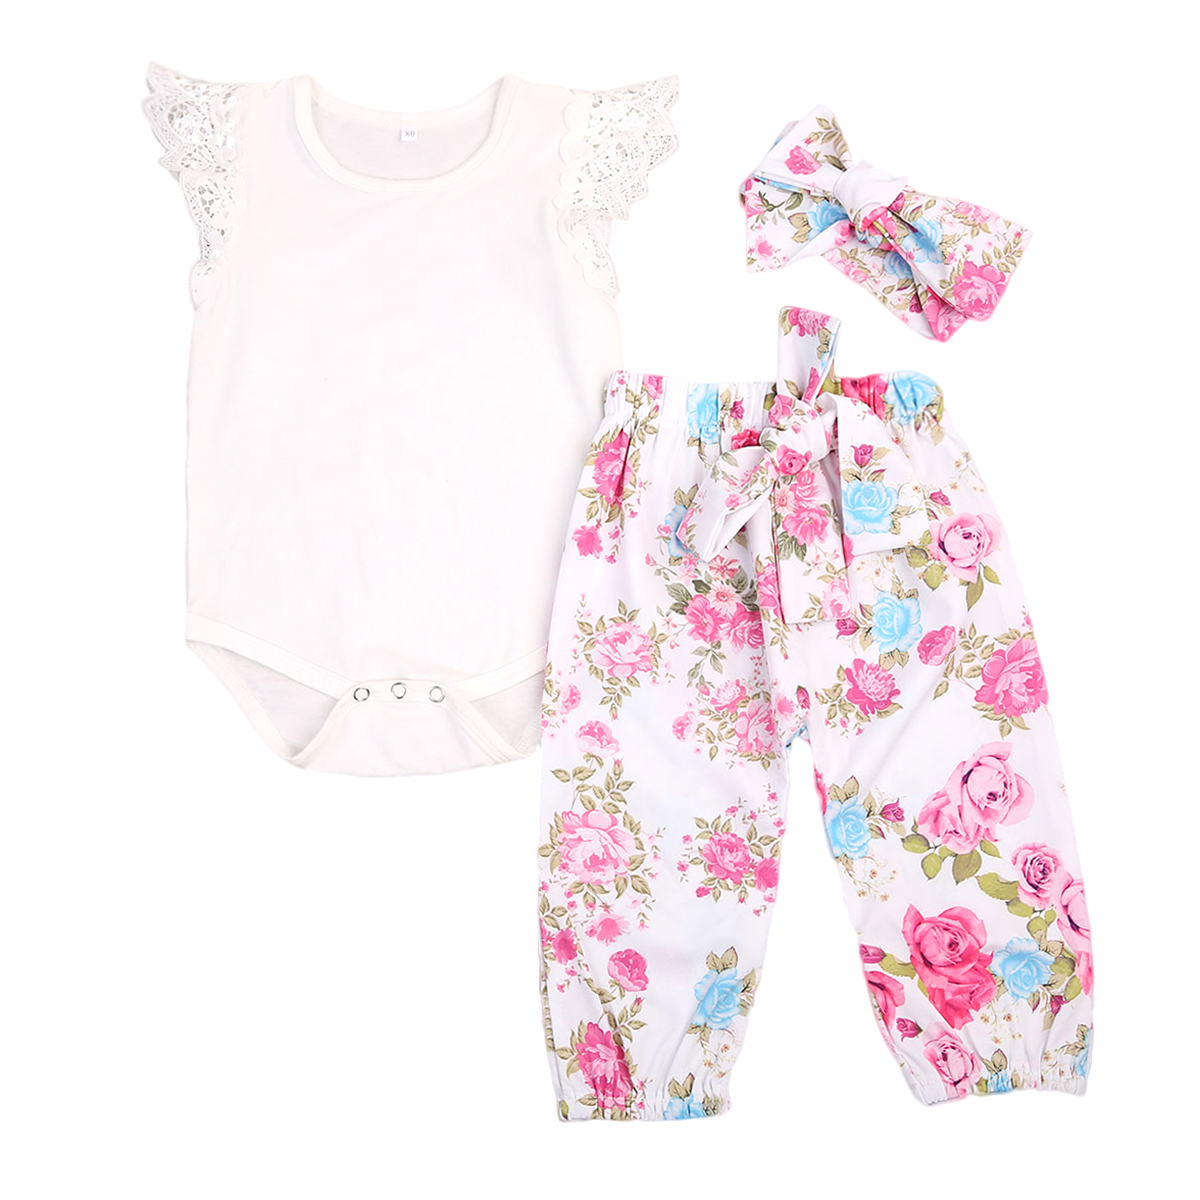 Newborn Infant Baby Girls Lace Romper Tops Floral Bowknot Leggings Pants Headband Outfit Summer Princess 3pcs Set Clothing 2017 summer newborn infant baby girls clothing set crown pattern romper bodysuit printed pants outfit 2pcs